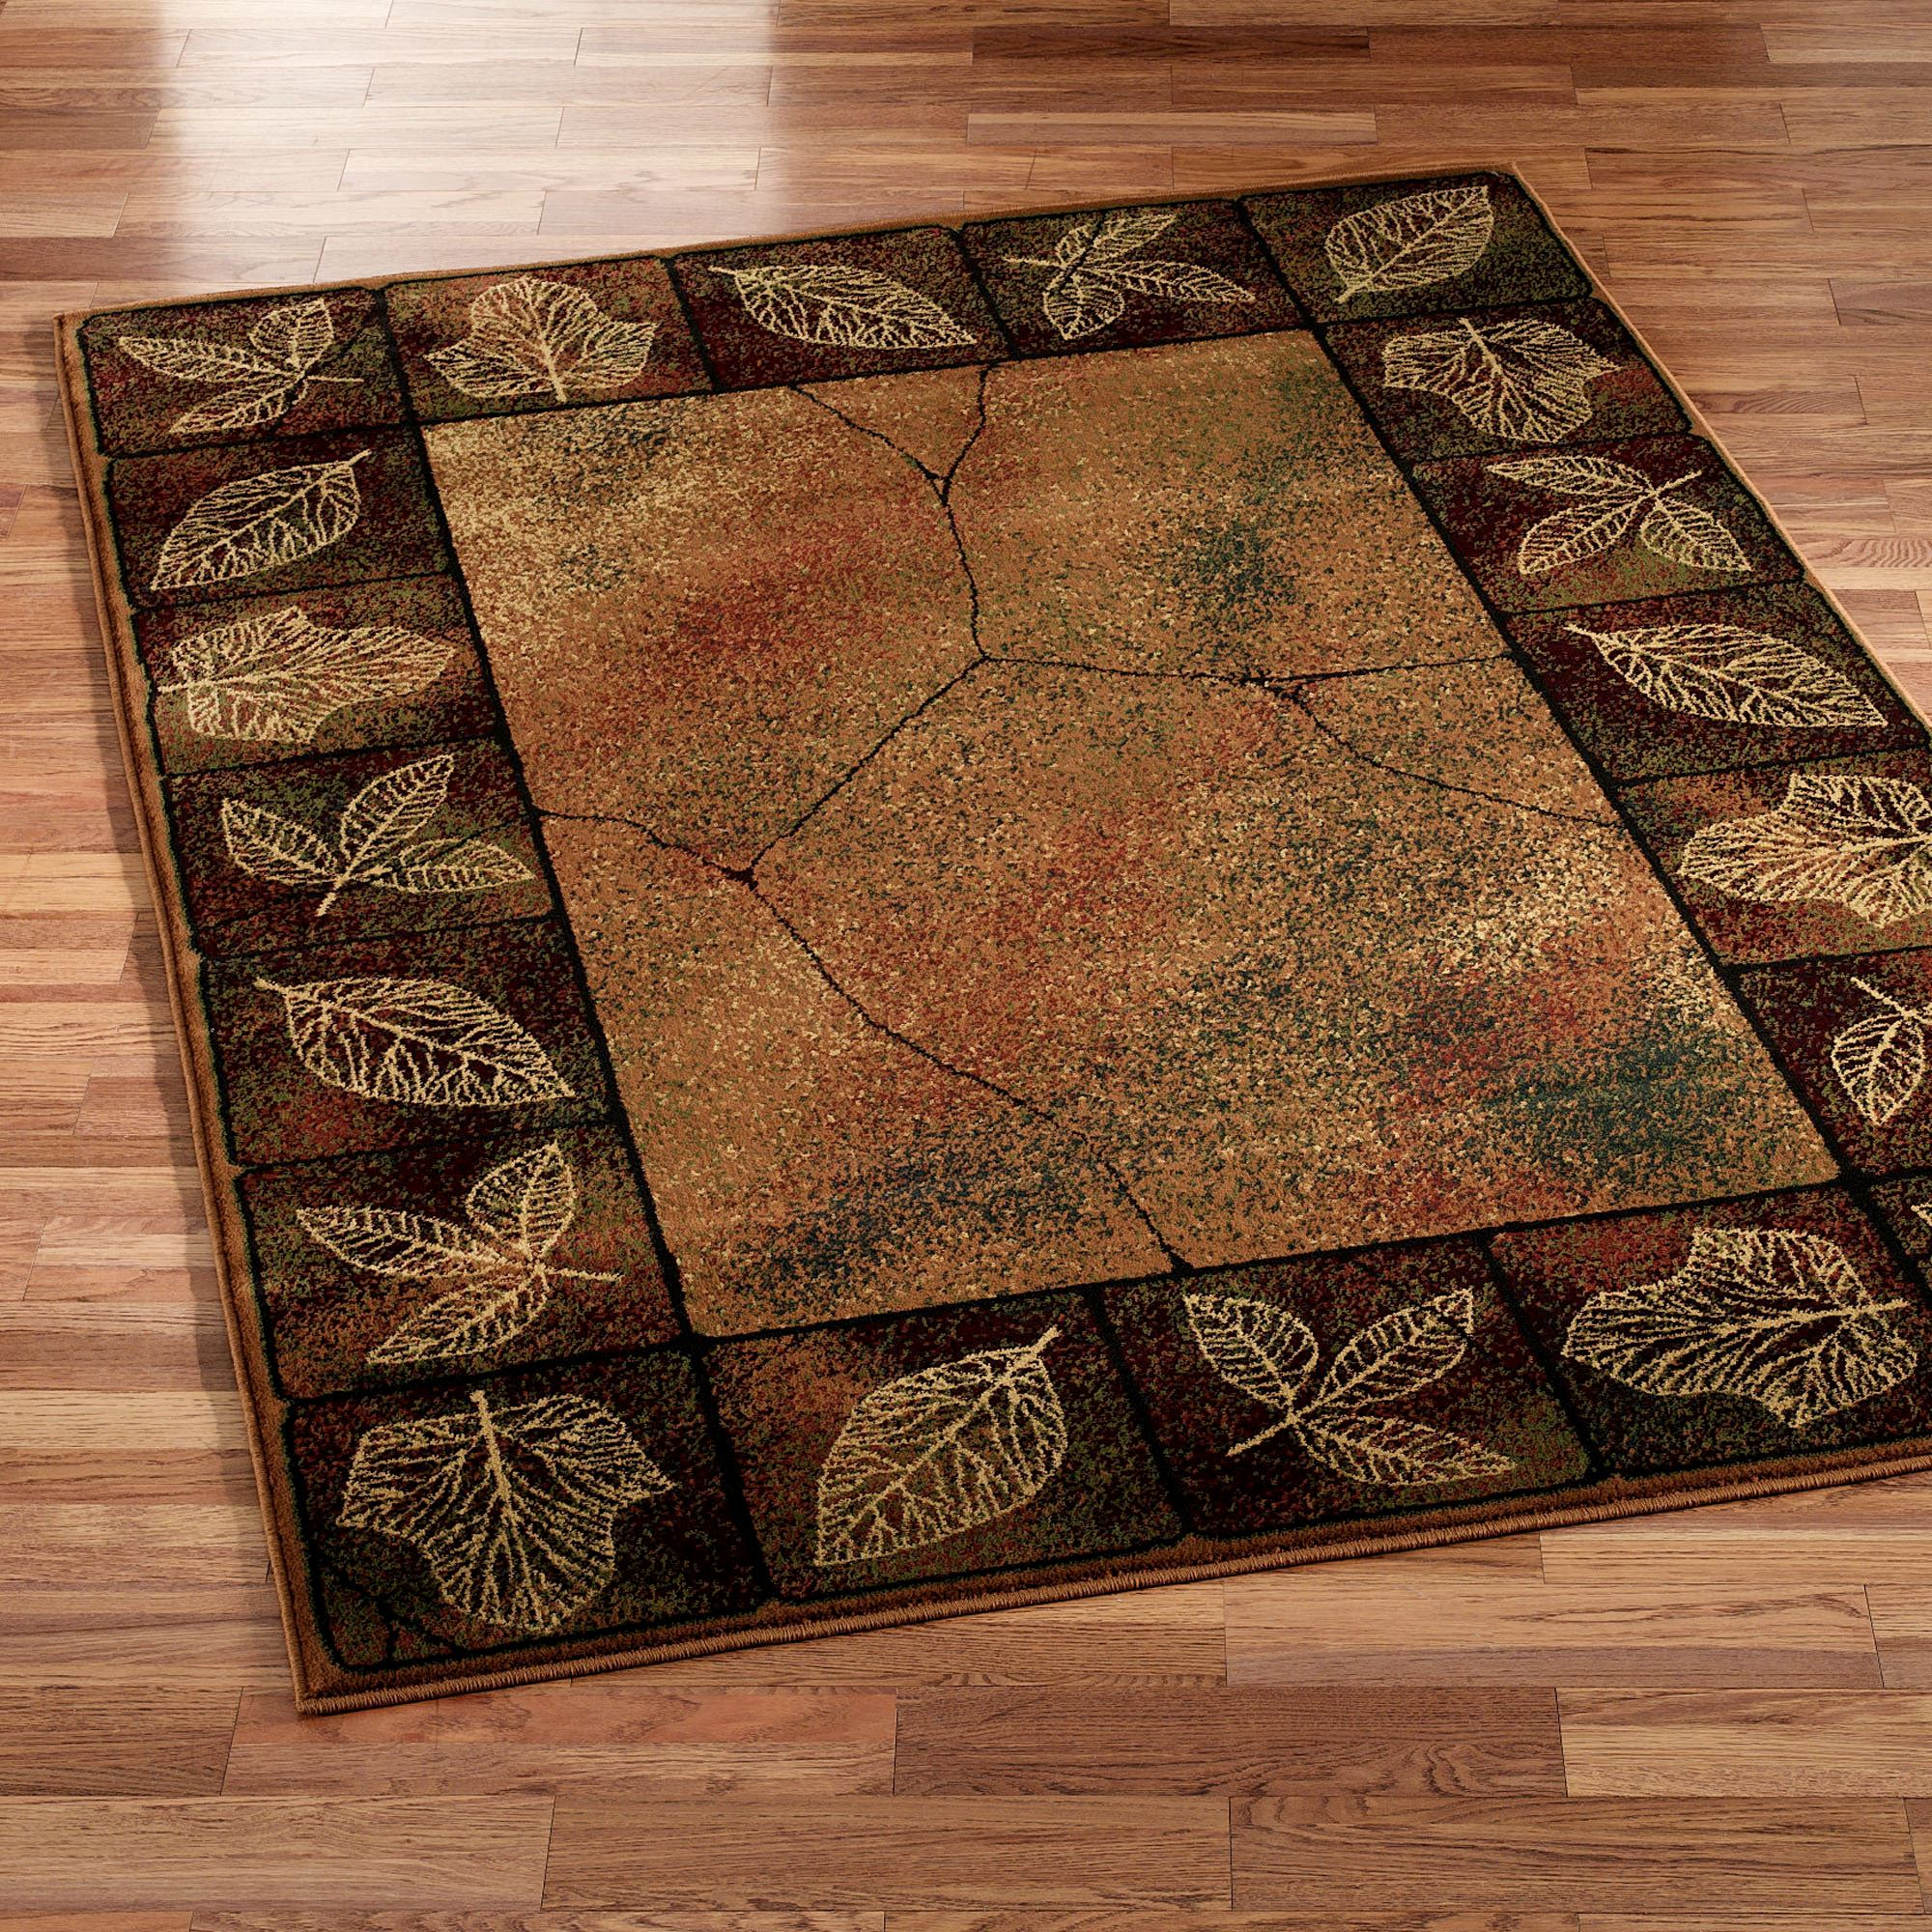 Top Gold Leaf Area Rug TC94